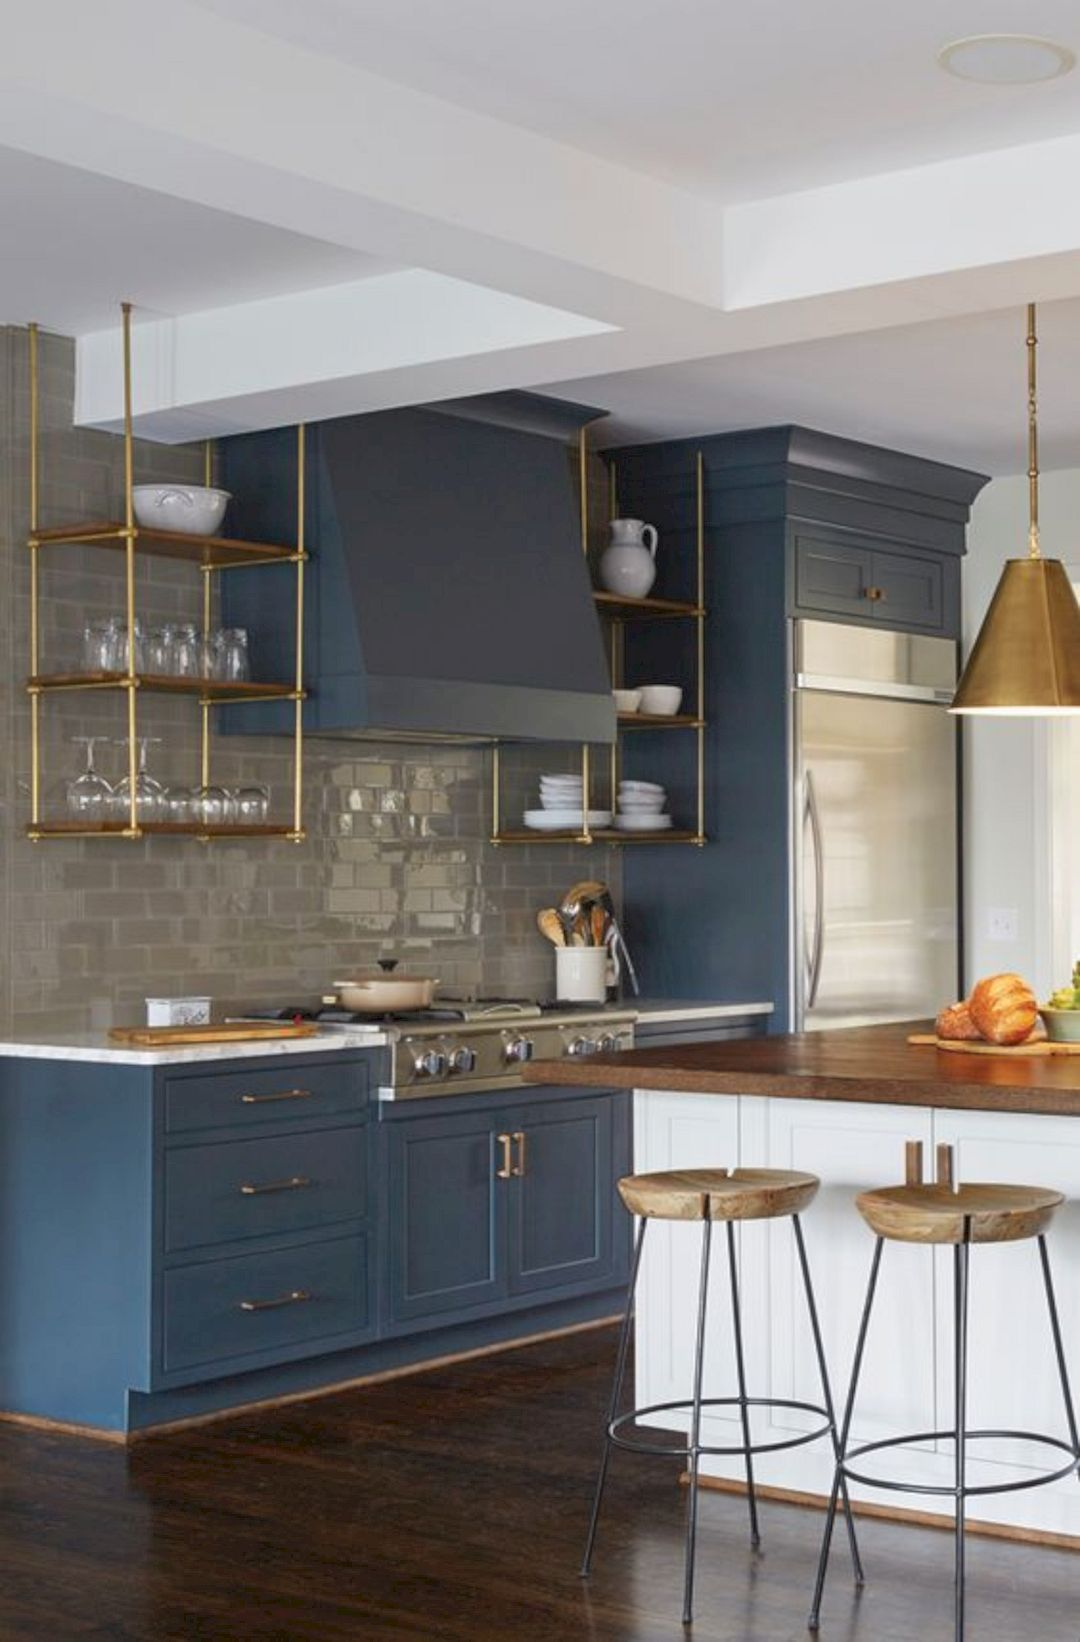 Small Kitchen Cabinets Design Ideas Html on creative small kitchen ideas, modern small kitchen design ideas, white kitchen design ideas, small kitchen planning ideas, for small kitchens kitchen ideas, small kitchen interior design ideas, small kitchen island design ideas, small kitchen remodeling ideas, small blue kitchen paint ideas, small space kitchen design, small kitchen ideas with oak cabinets, small kitchen cabinets storage, small kitchen design ideas living room, garage cabinet plans ideas, small kitchen ideas on a budget, small kitchen layout design, kitchen cabinet pantry design ideas, small kitchen cabinets paint ideas, easy kitchen design ideas, small apartment kitchen design,